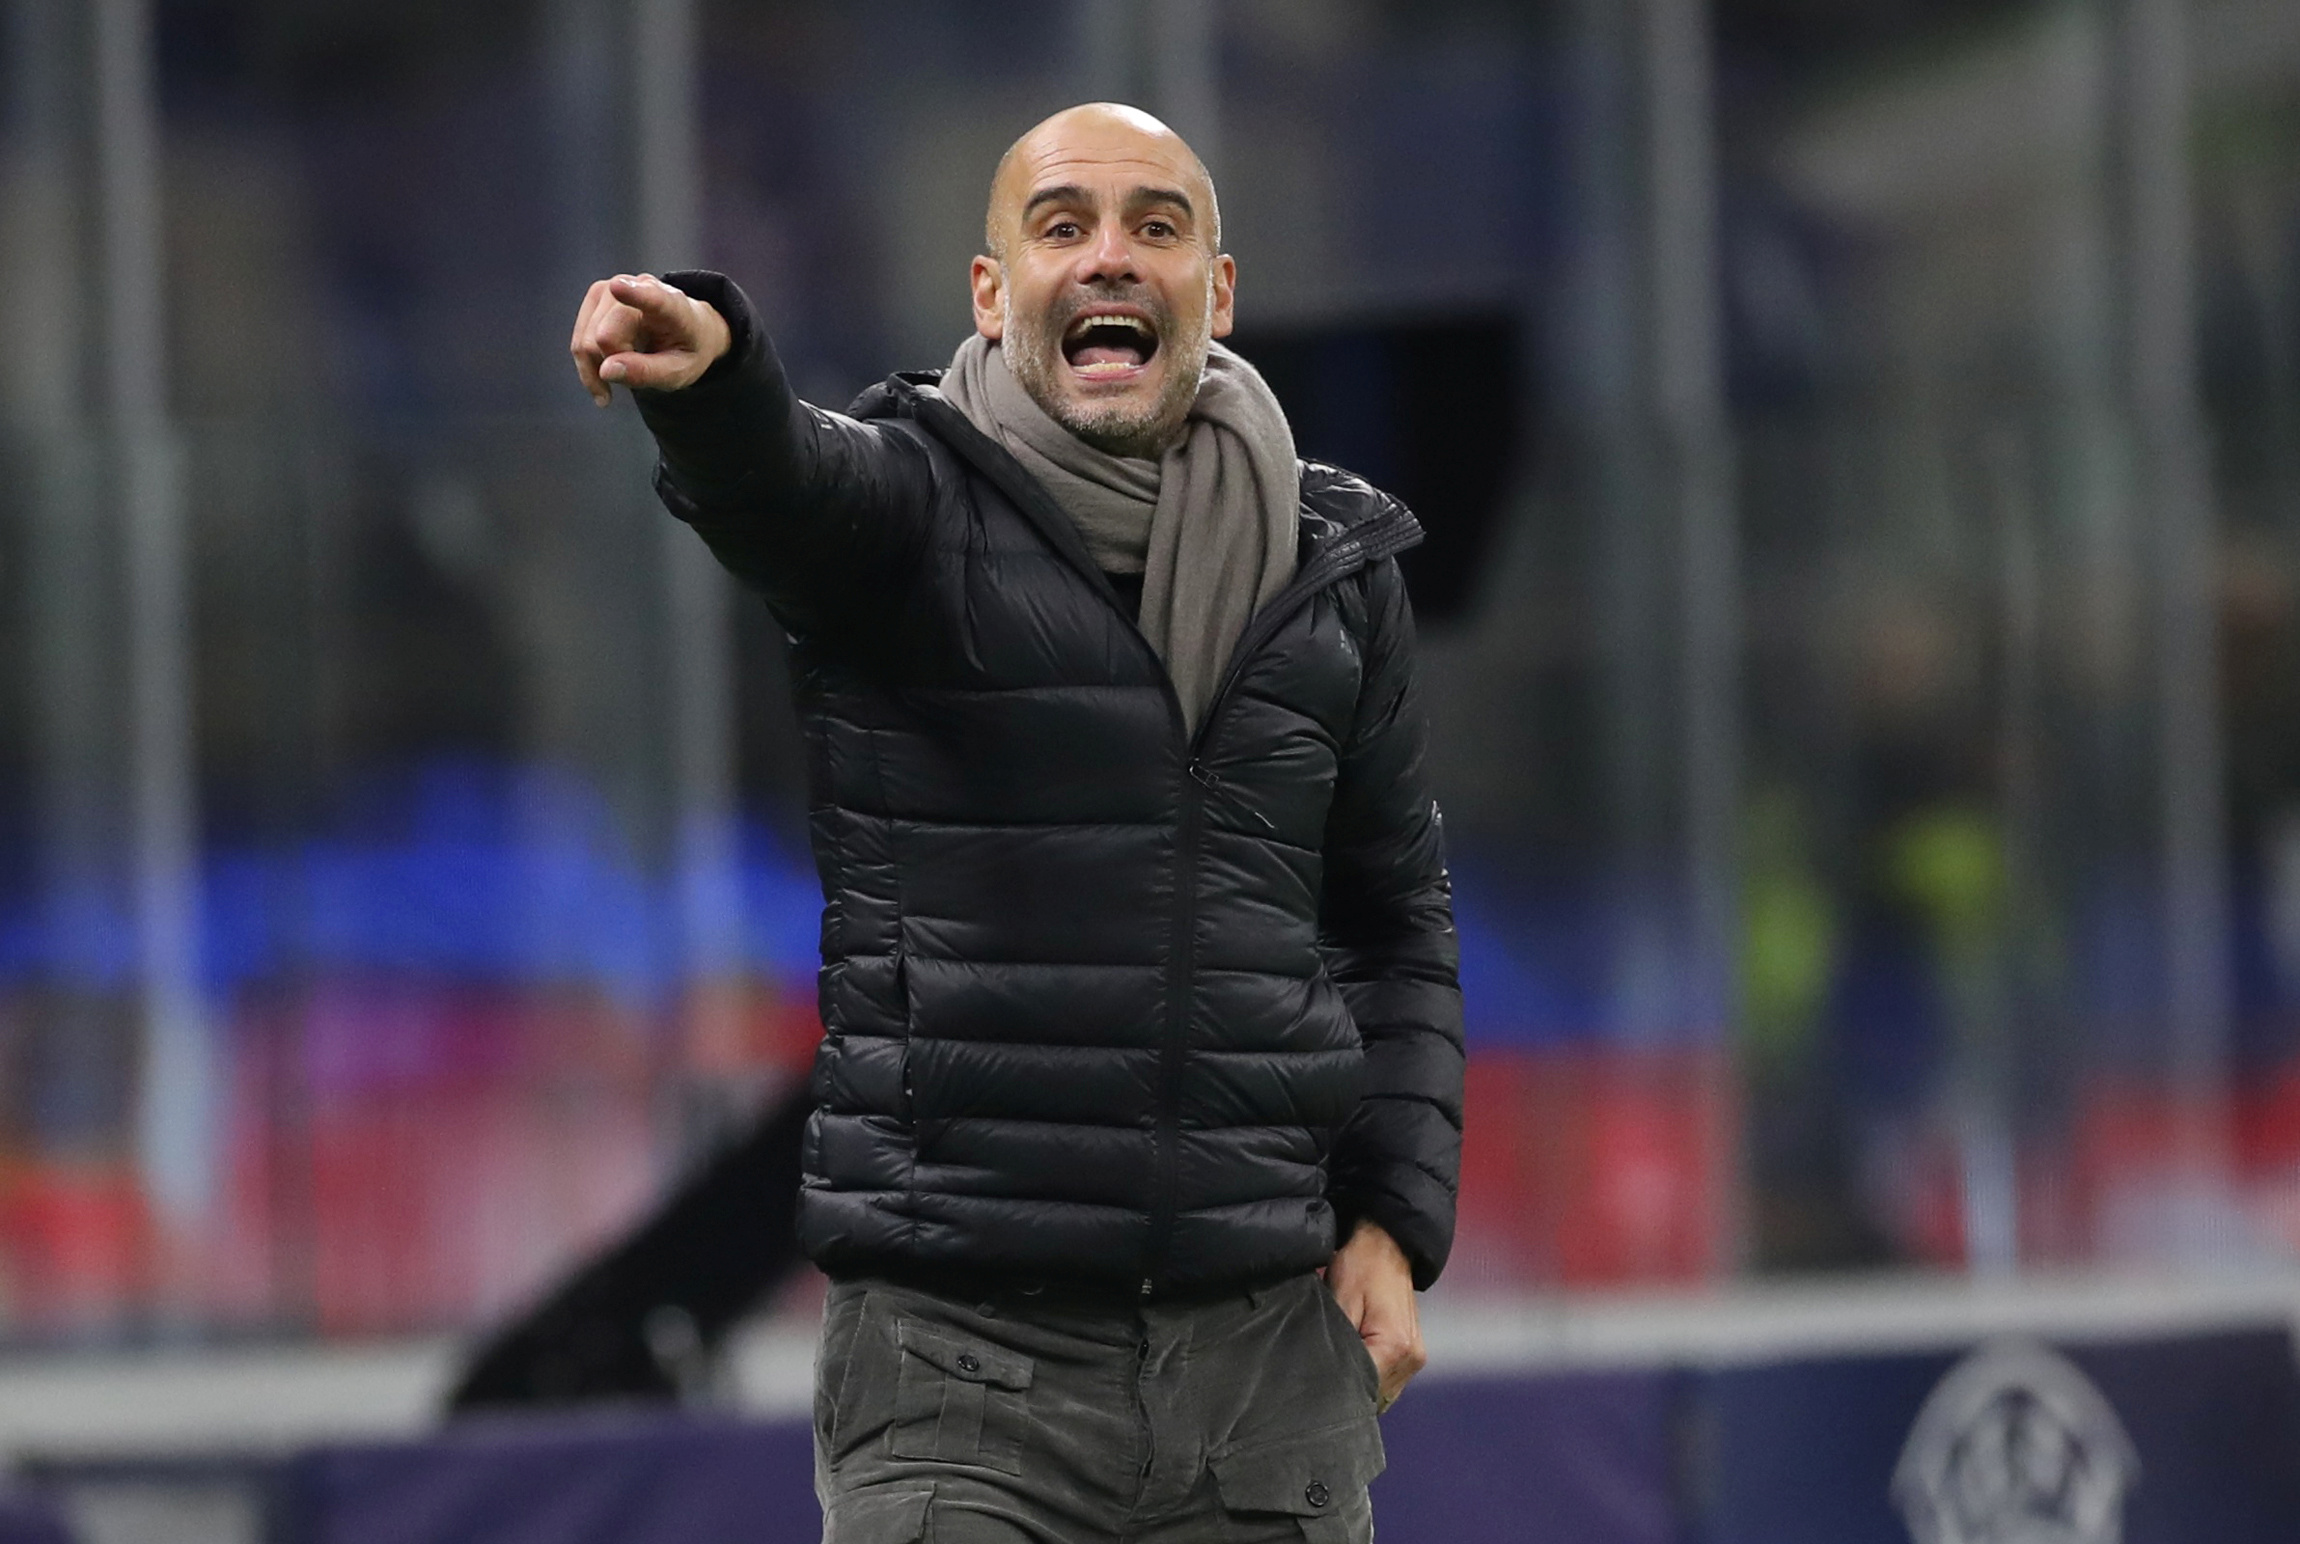 Why Pep Guardiola is the best manager in the modern era